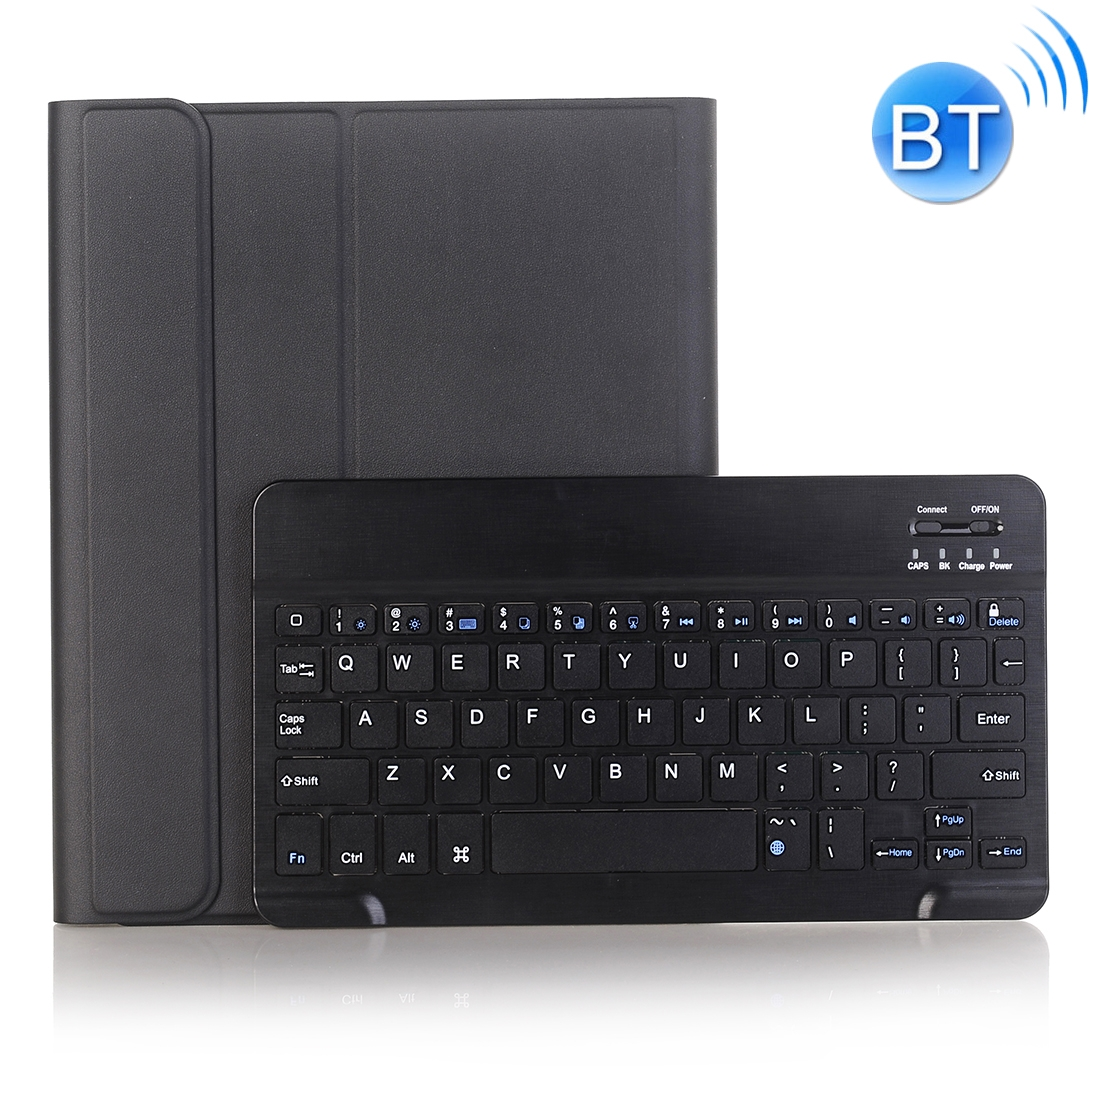 iPad Case With Keyboard & Bluetooth For iPad 10.2 Inch, Leather Case & Backlit Keyboard (Black)